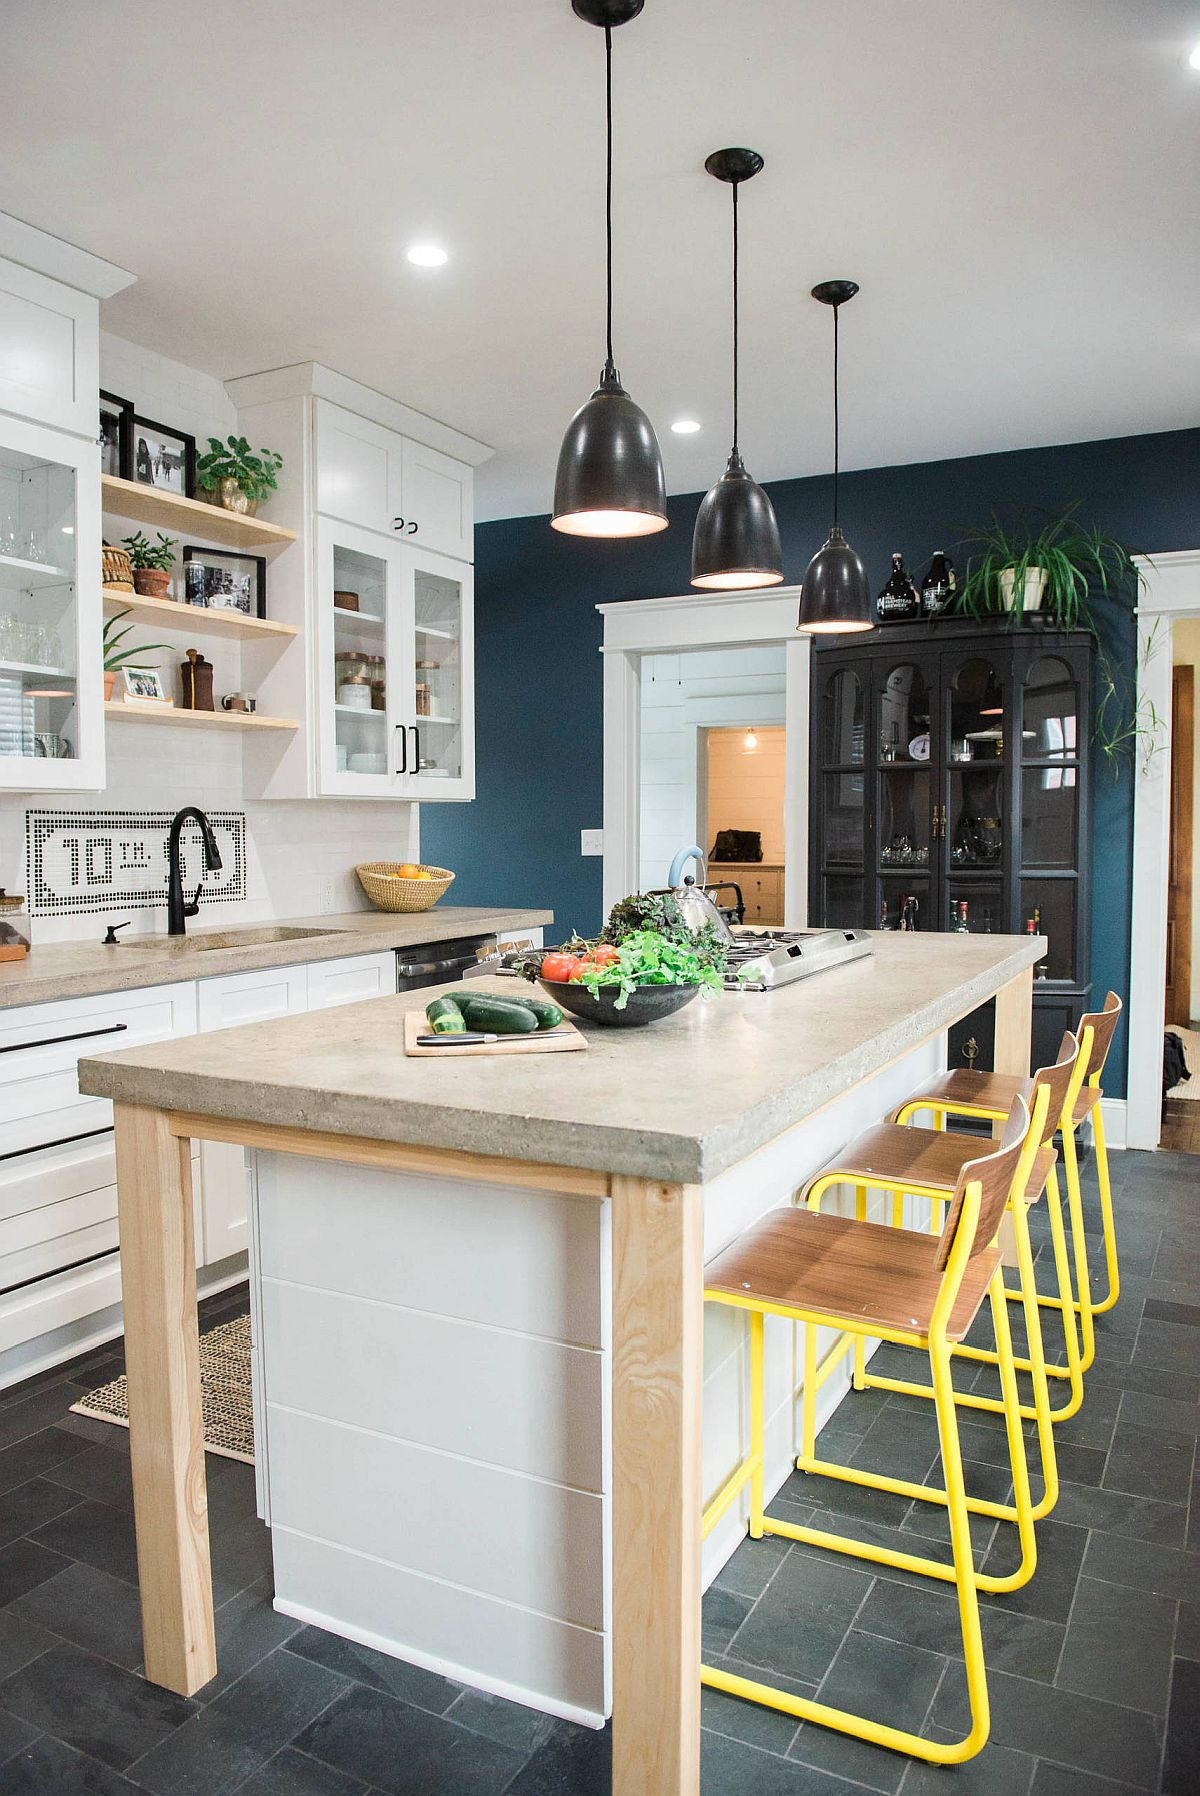 Ingenious small kitchen of New York home with lovely concrete countertops